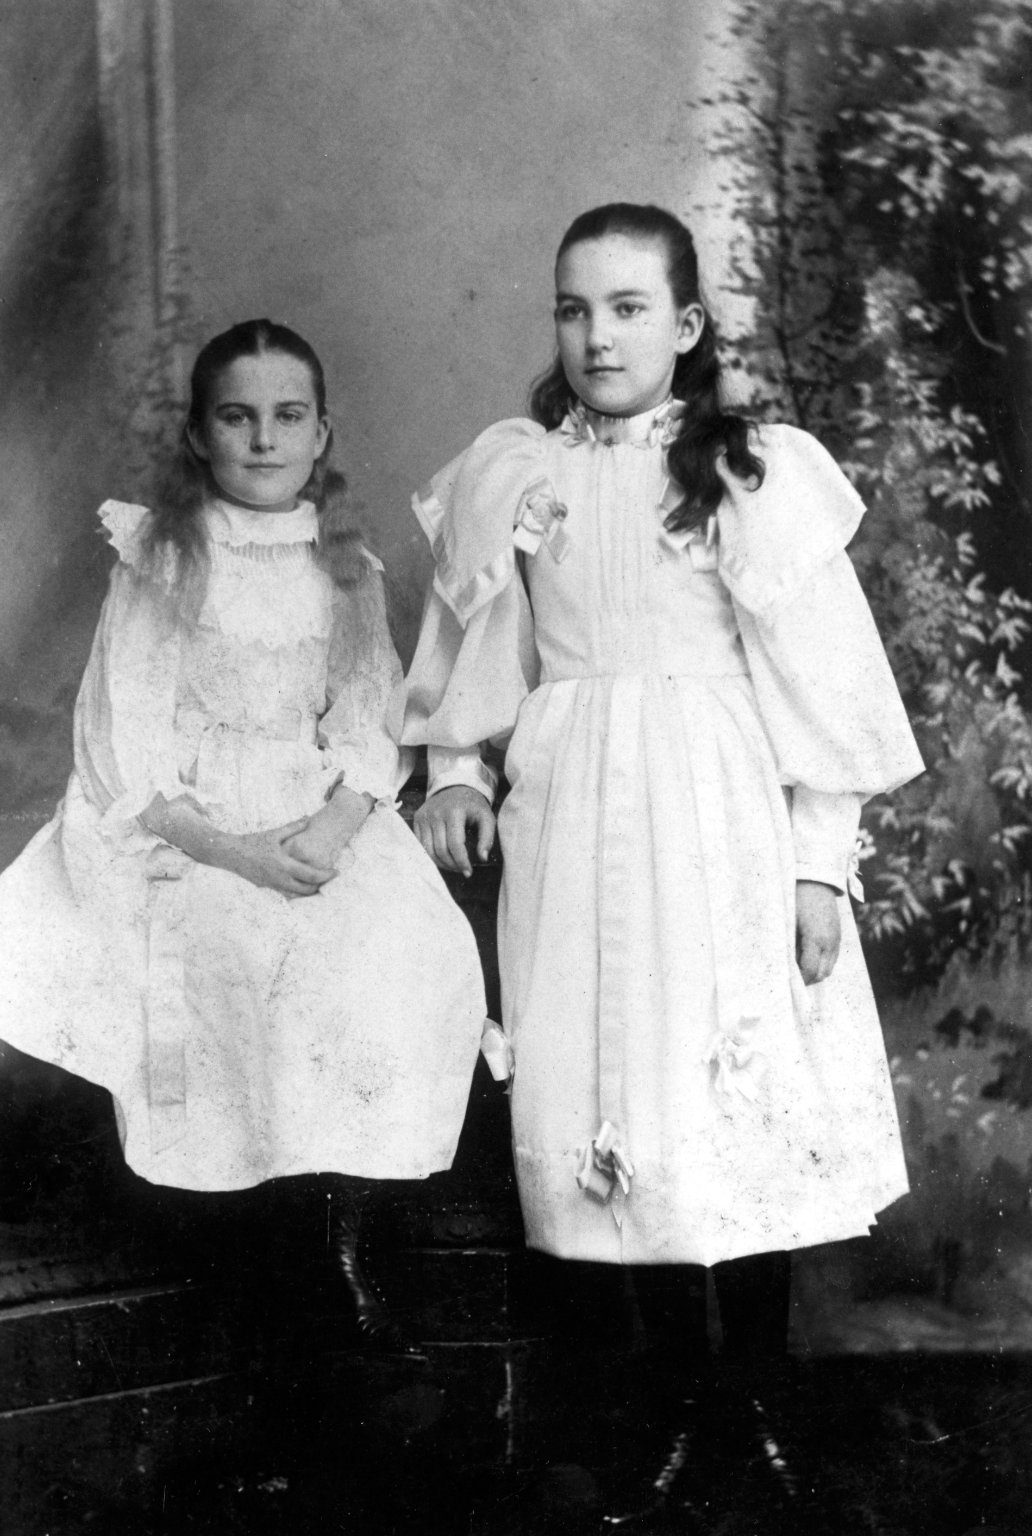 Ruth Underhill and Sister as Children